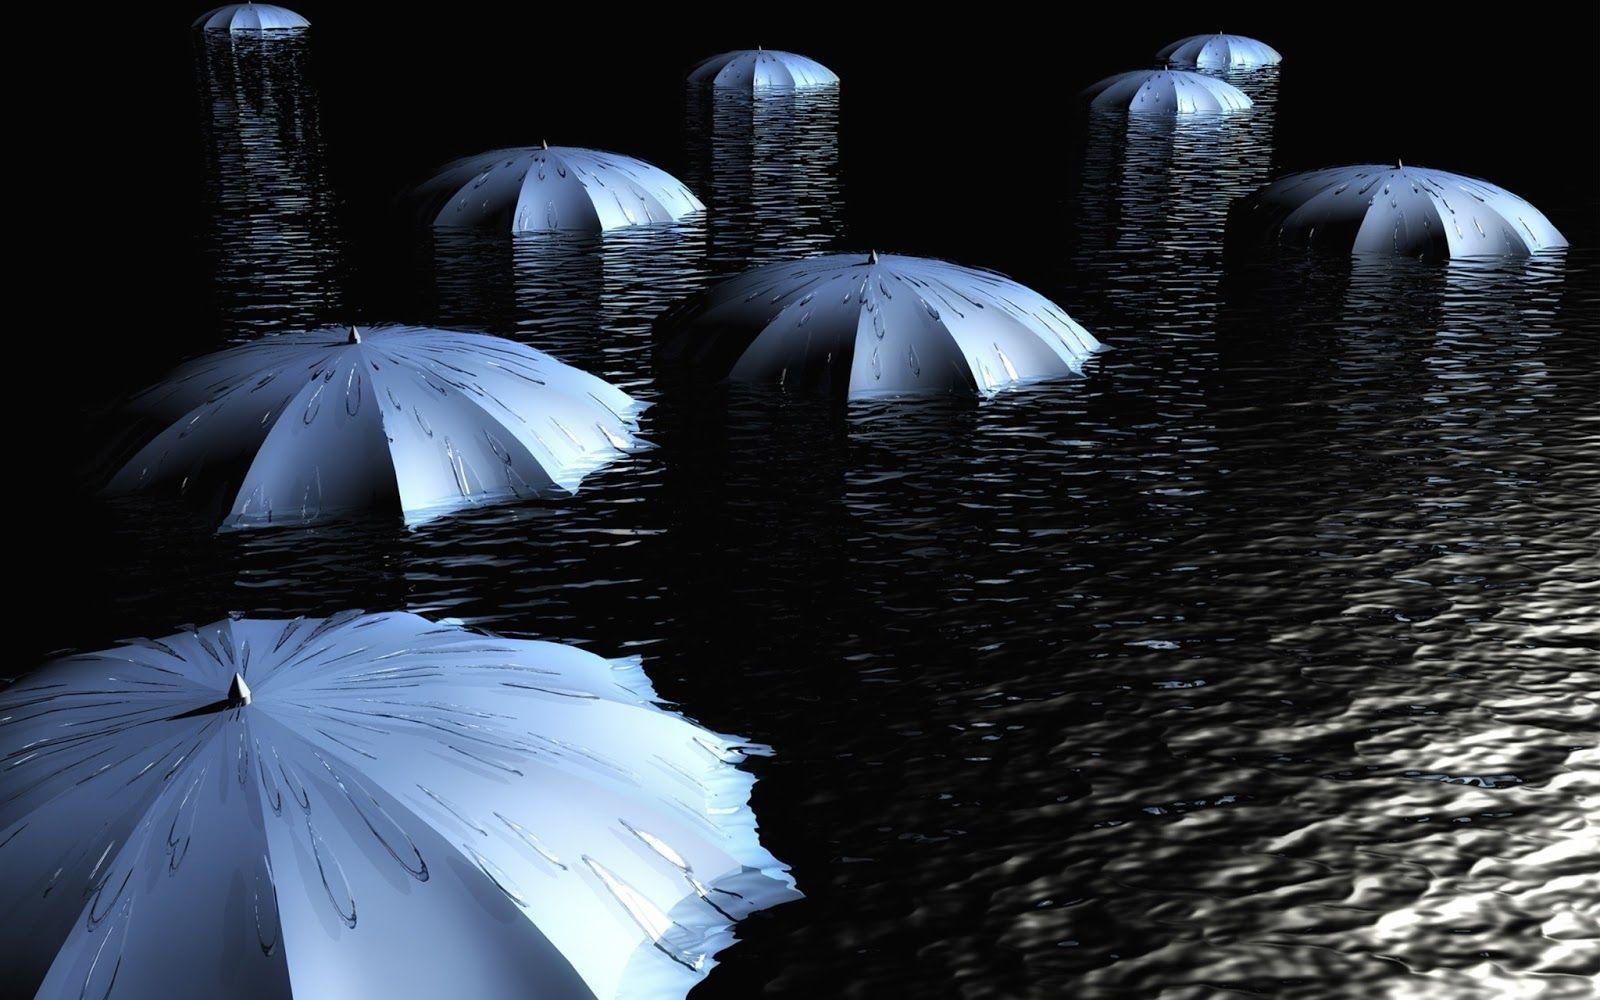 Wallpapers umbrella&in the dark water